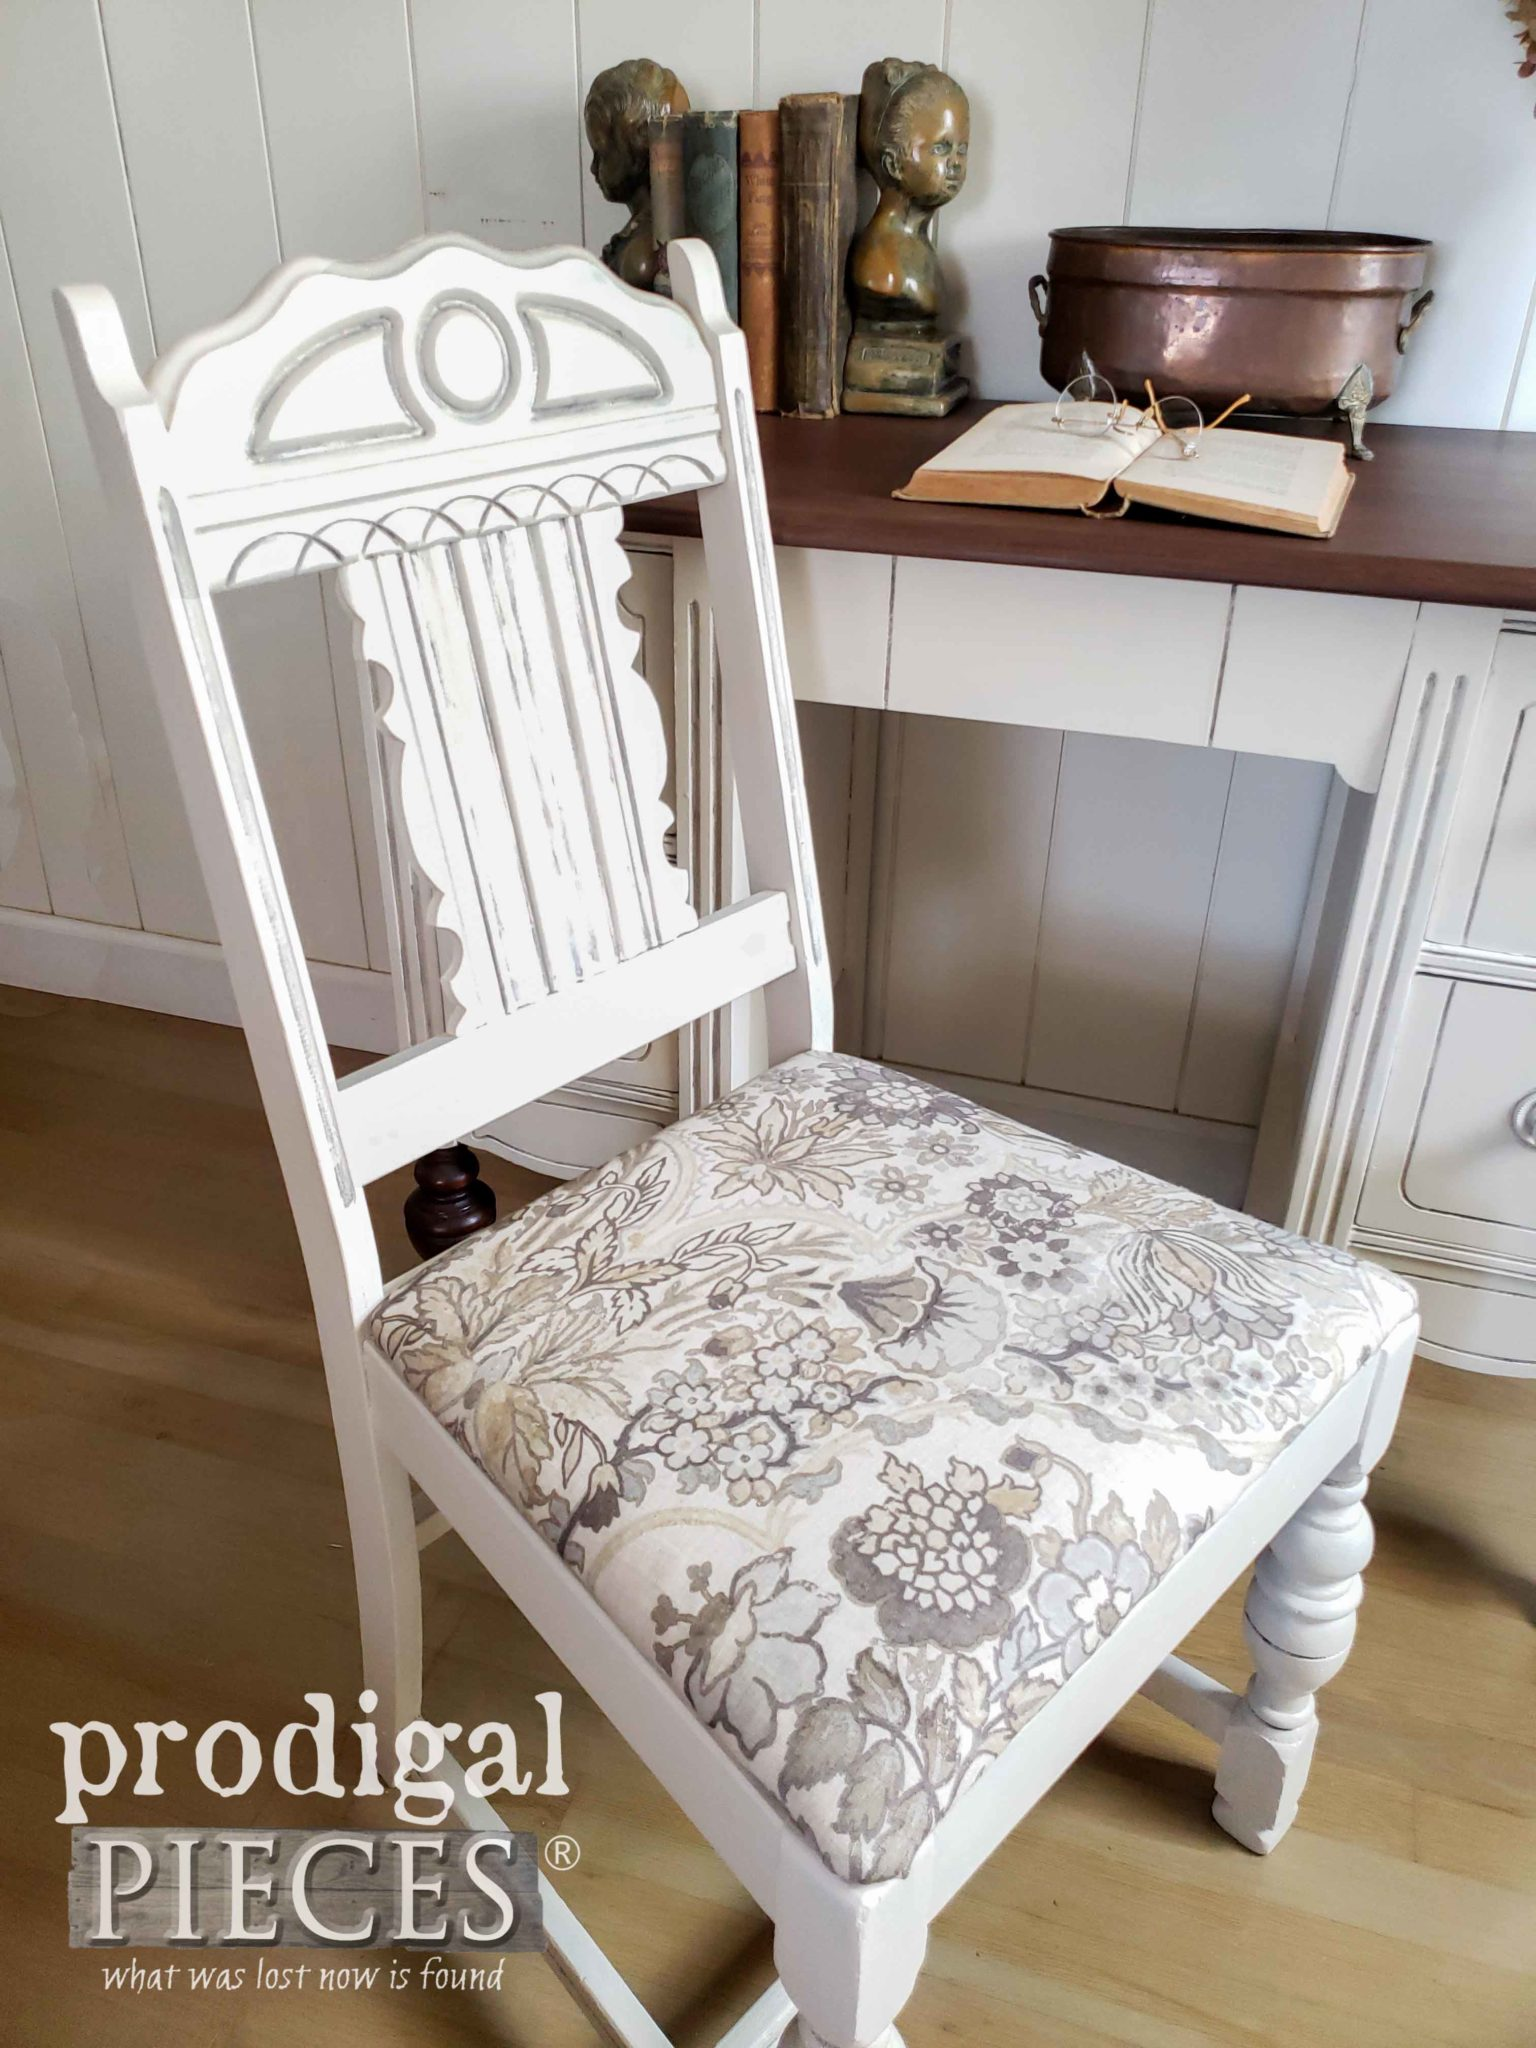 Chair with 100% Linen Upholstery for Antique Desk Set by Larissa of Prodigal Pieces | prodigalpieces.com